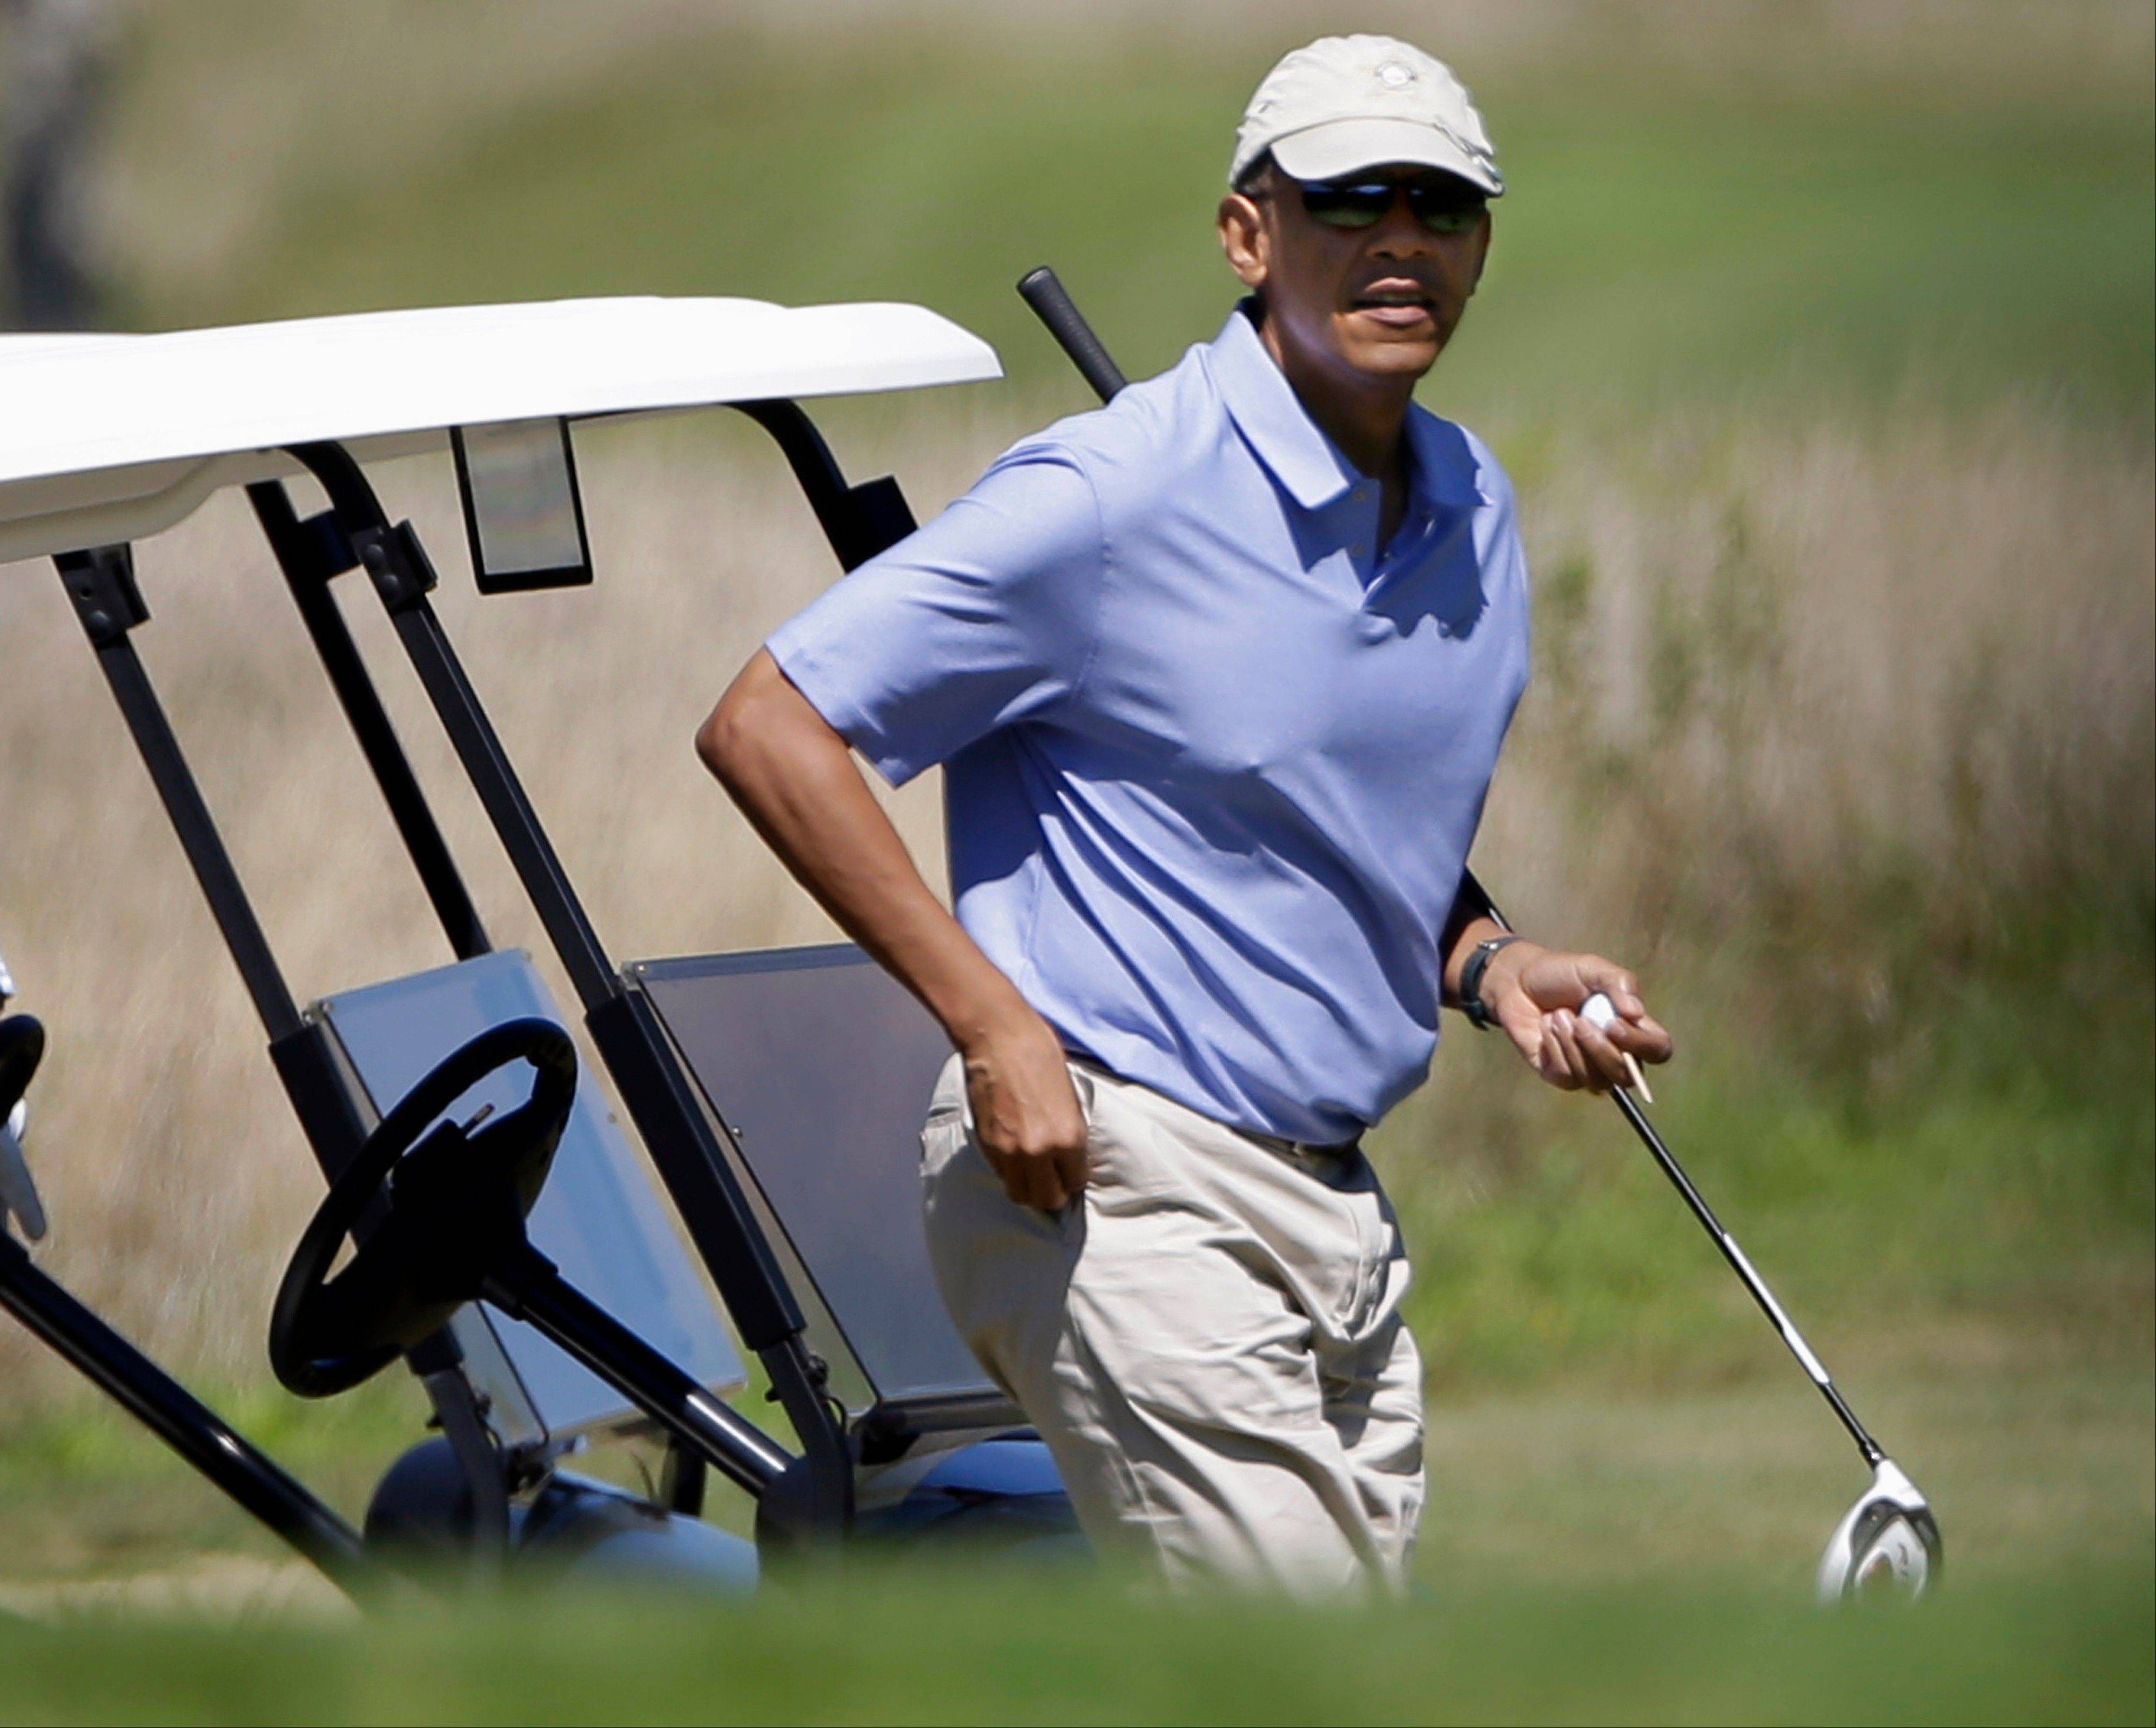 President Barack Obama walks toward the tee while golfing at Vineyard Golf Club in Edgartown, Mass., on the island of Martha�s Vineyard Wednesday.